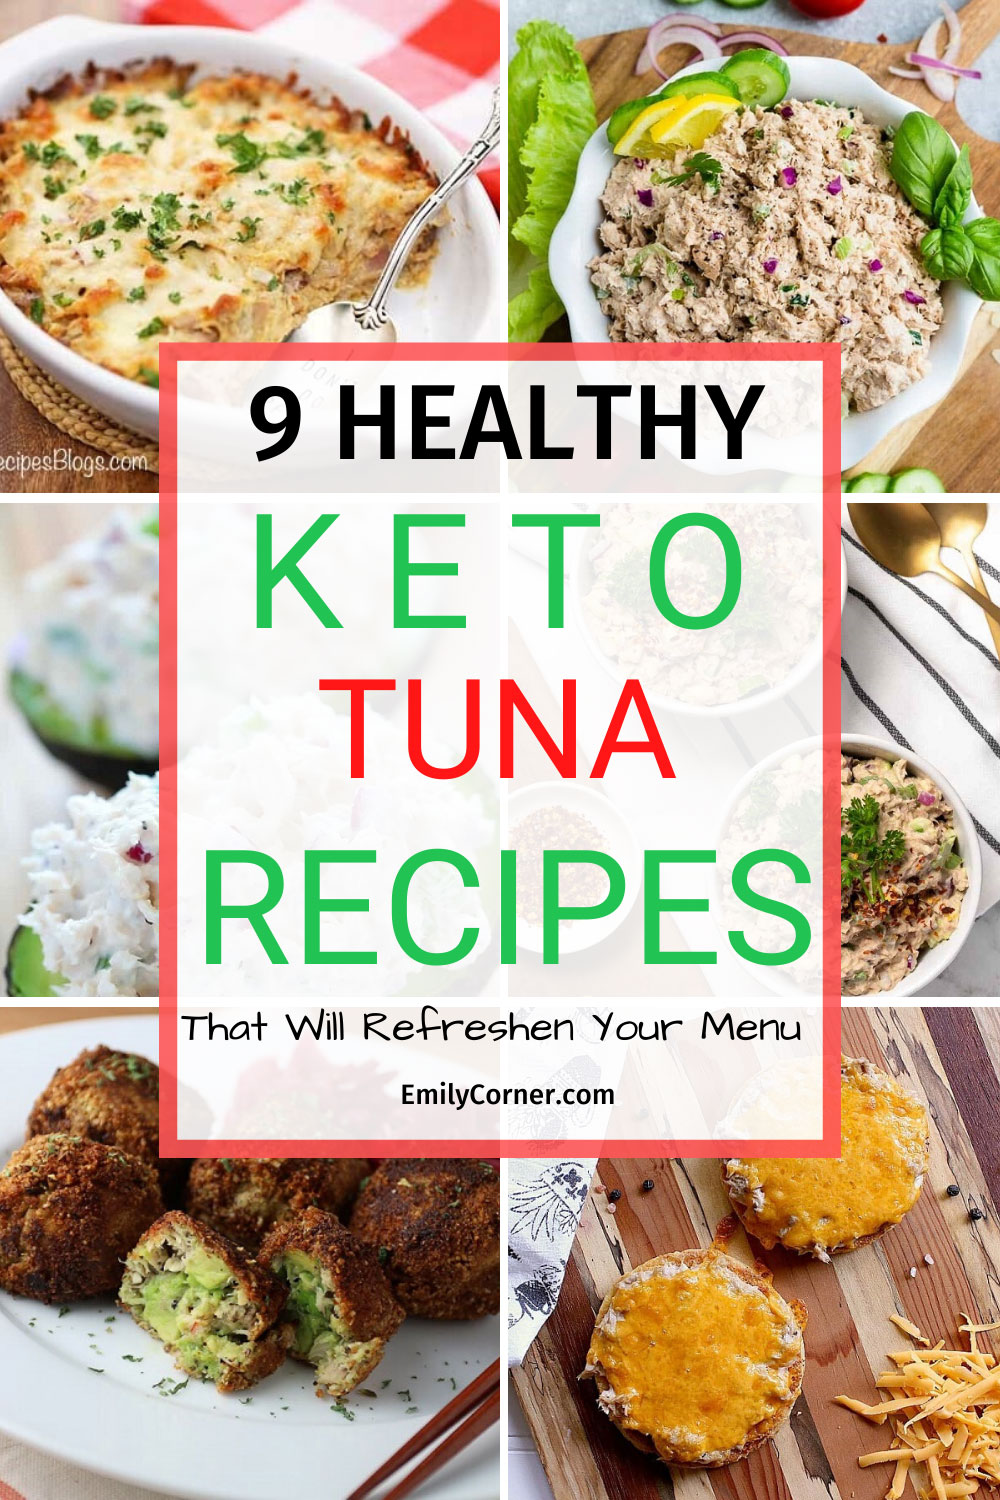 Keto Tuna Recipes